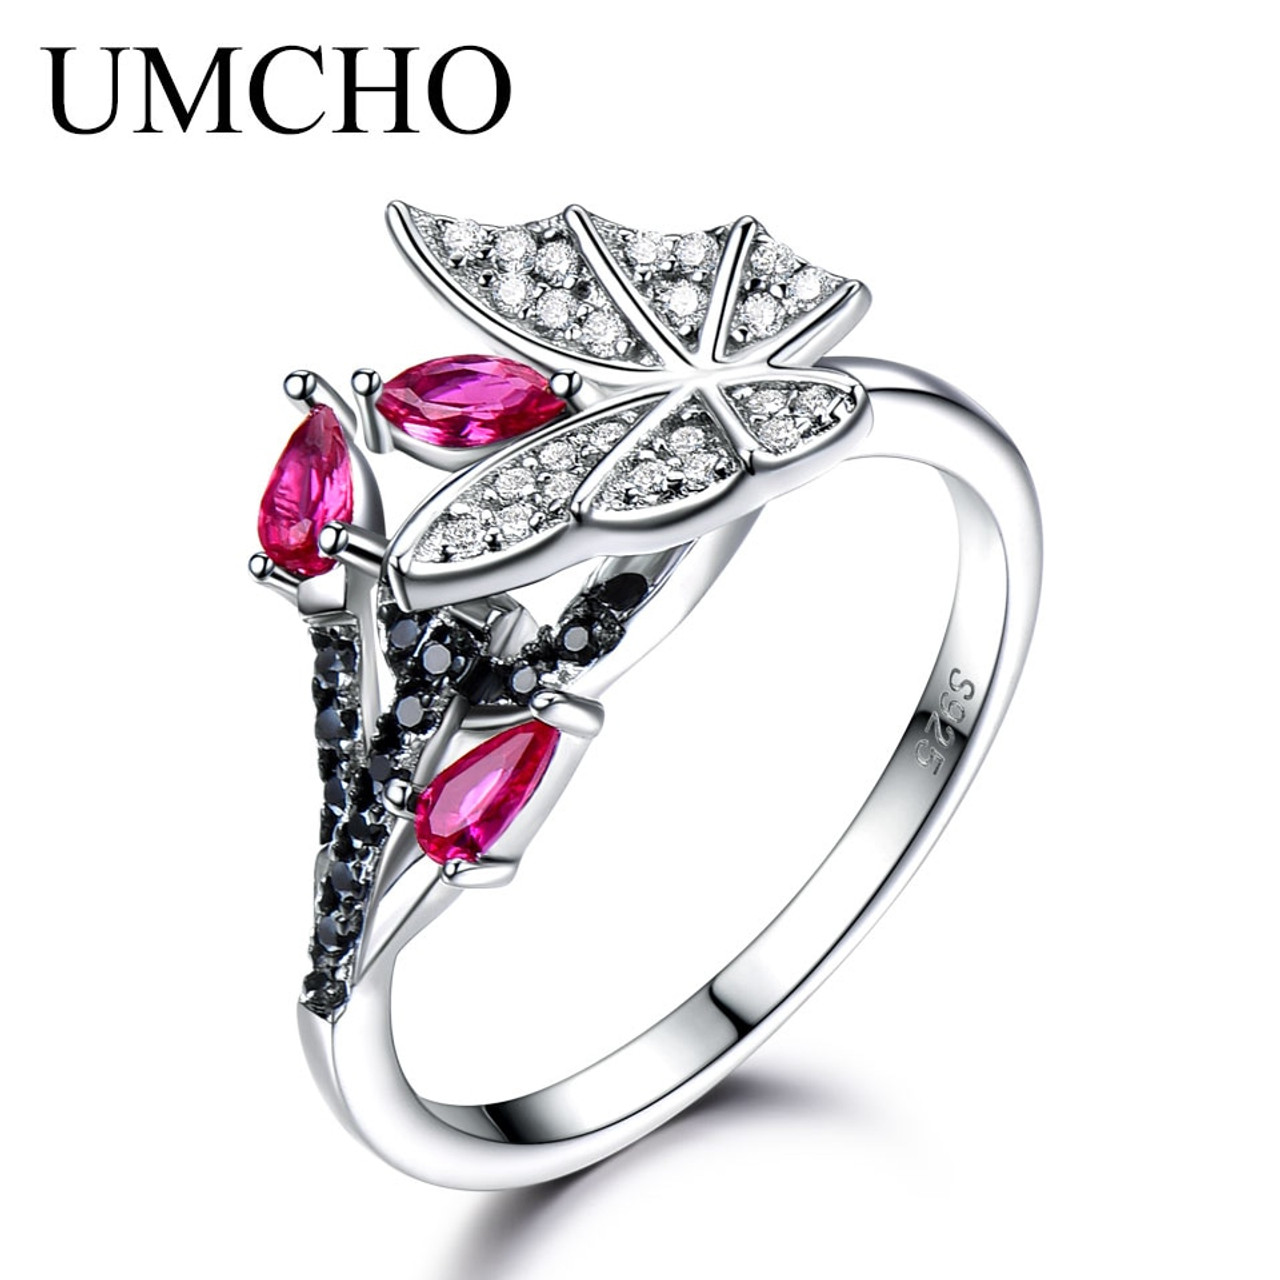 6e97d27f5617 UMCHO Solid 925 Sterling Silver Rings For Women Natural Black Spinel Ruby  Gemstone Fashion Unique Butterfly Ring Fine Jewelry - OnshopDeals.Com